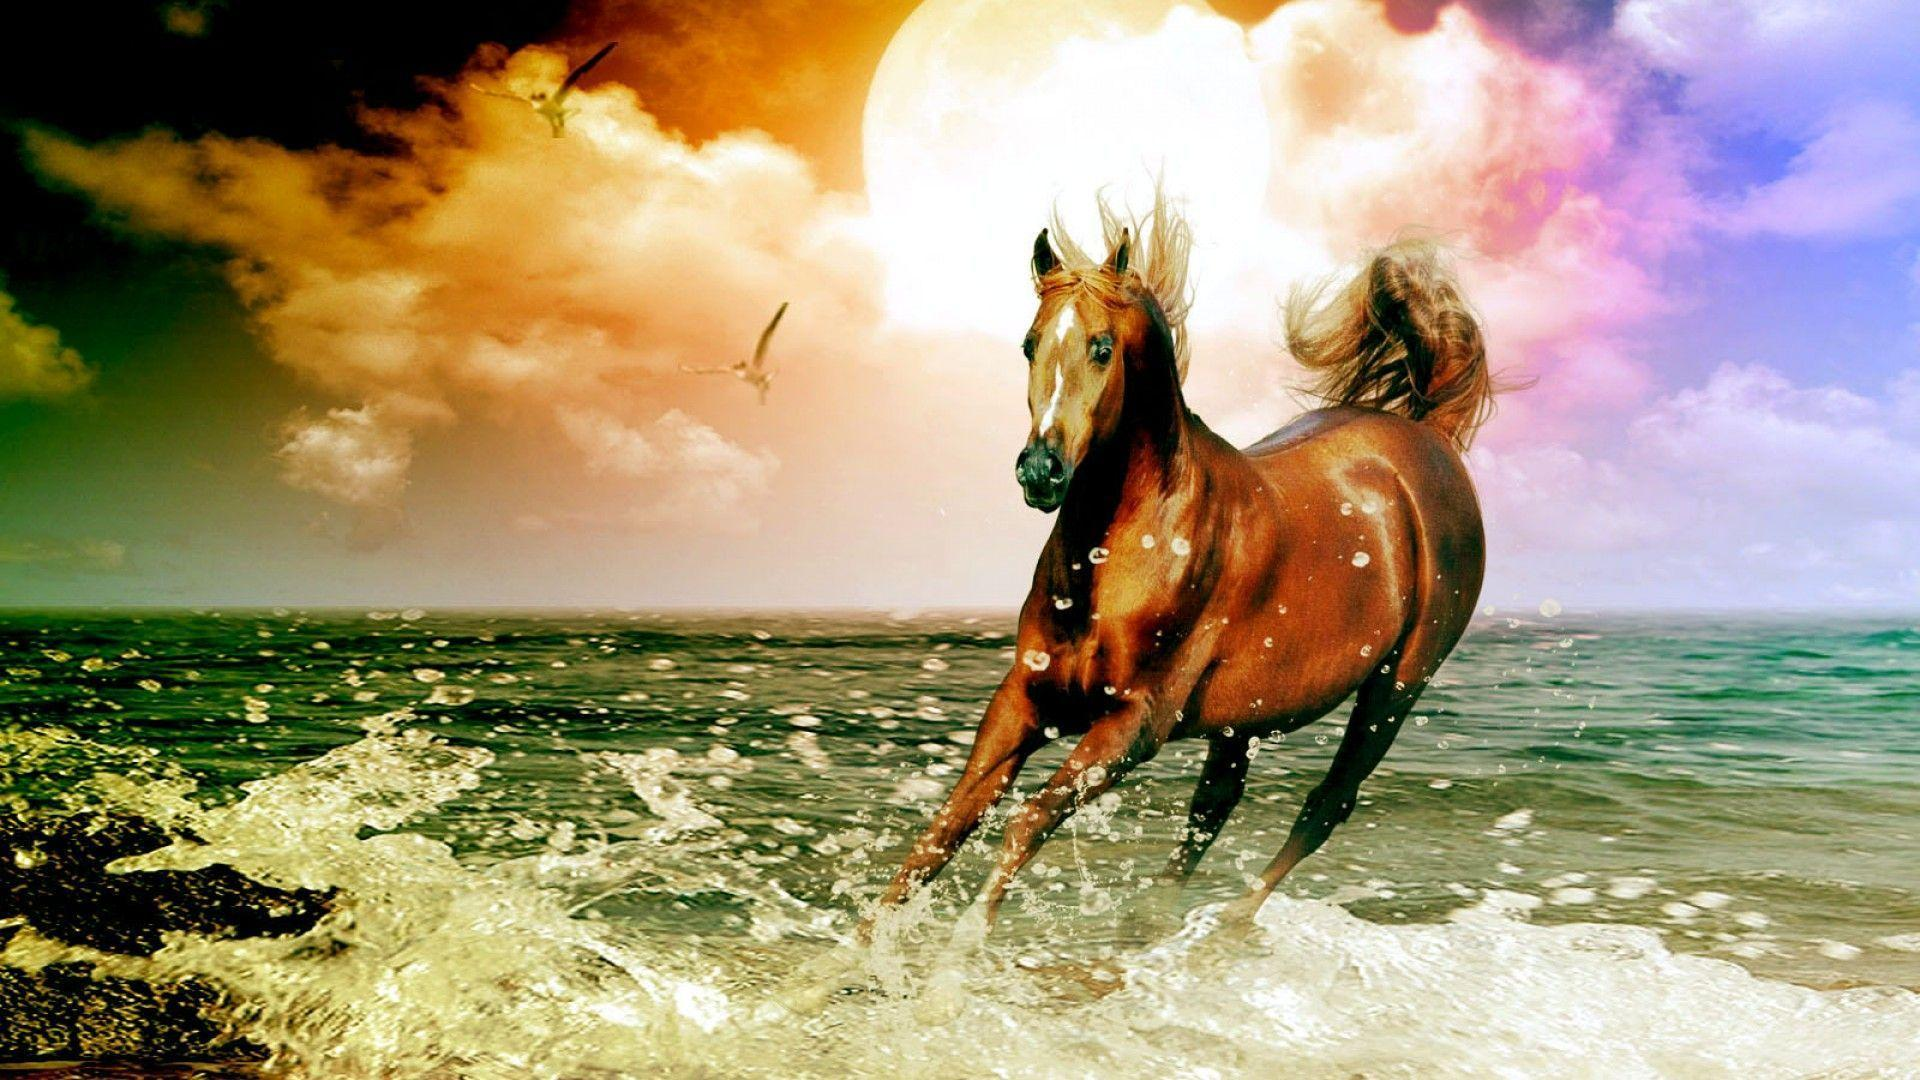 Horse Background Wallpaper Posted By Ethan Johnson